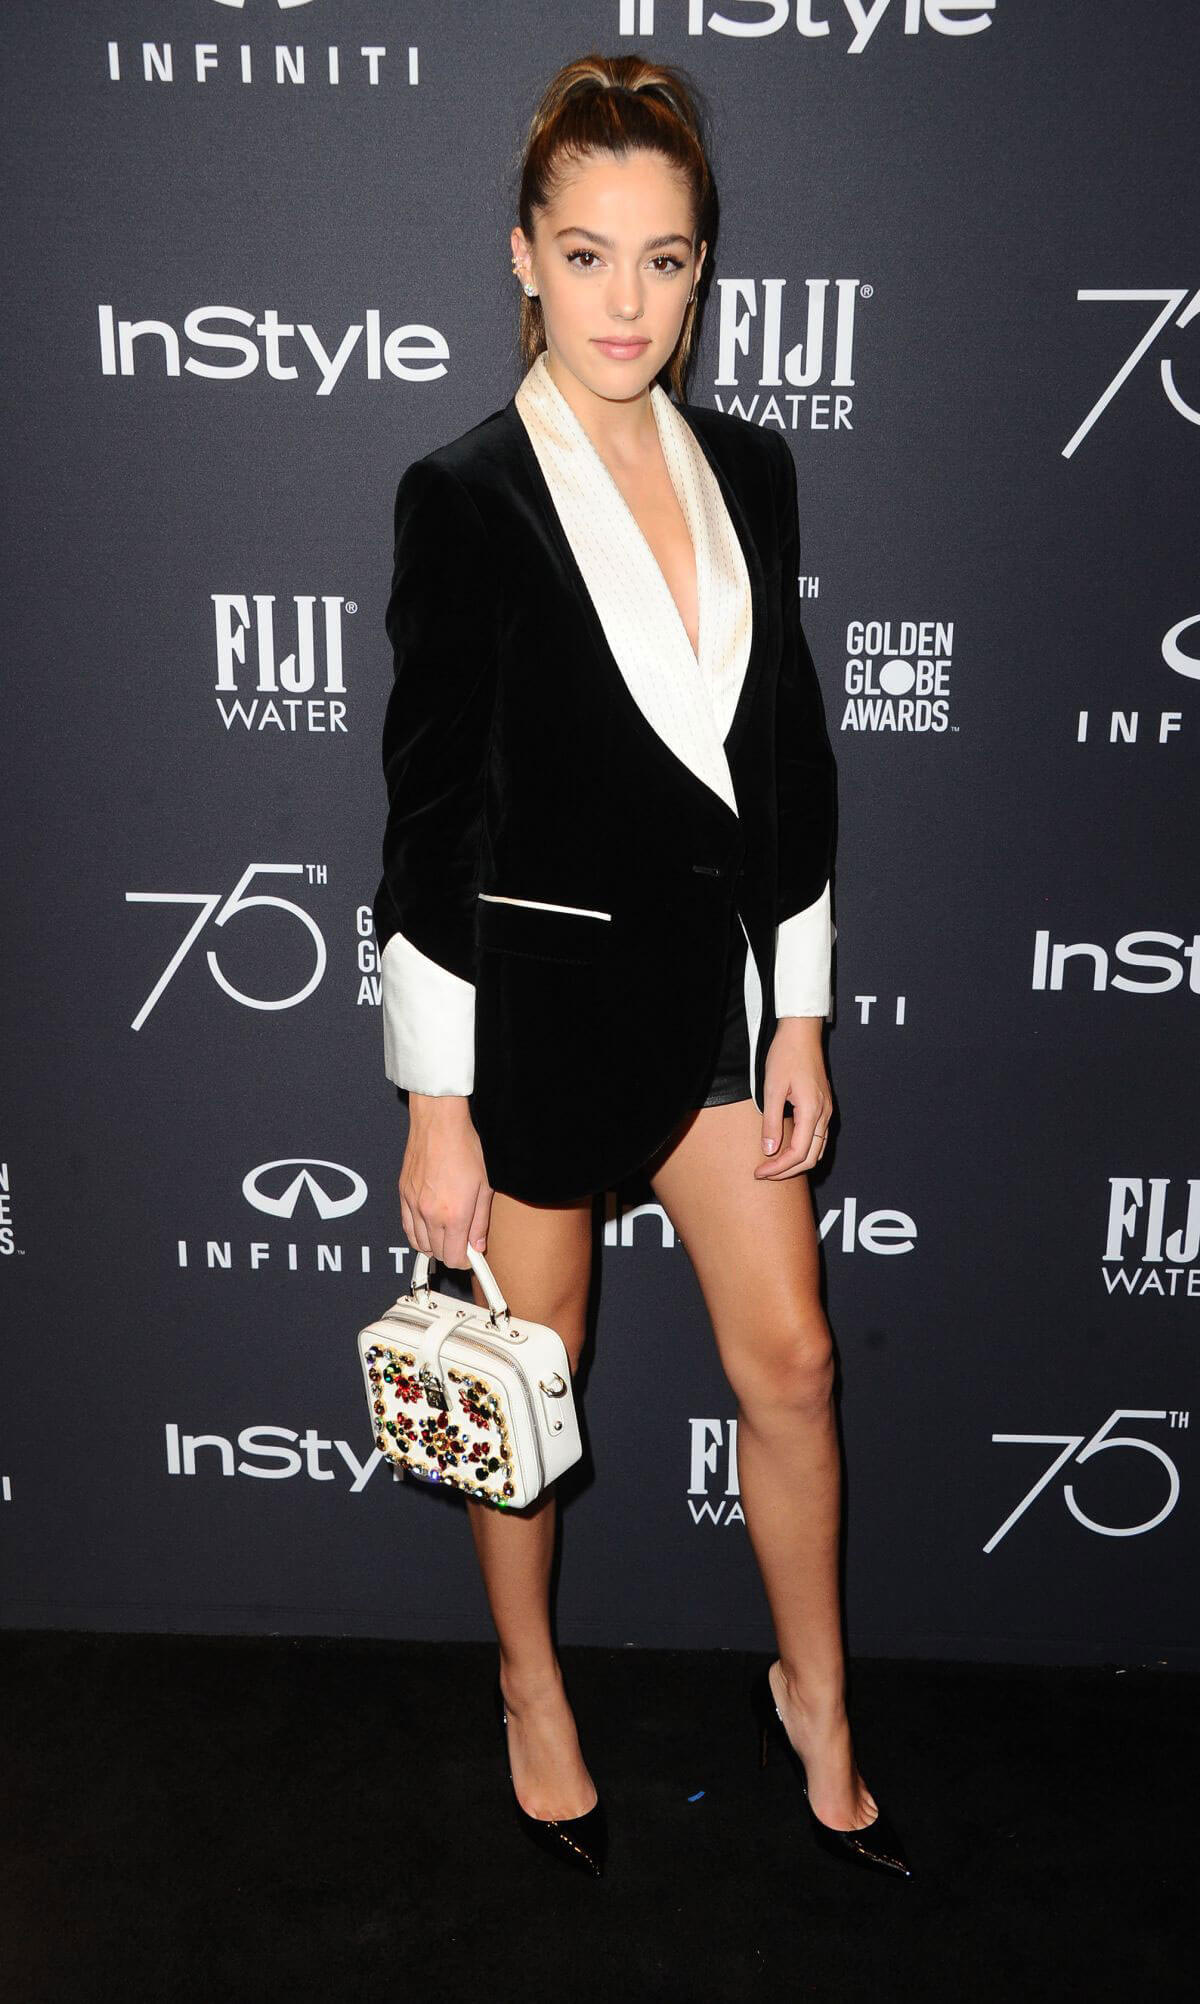 Sistine Rose Stallone Stills at HFPA & Instyle Celebrate 75th Anniversary of the Golden Globes in Los Angeles 2017/11/15